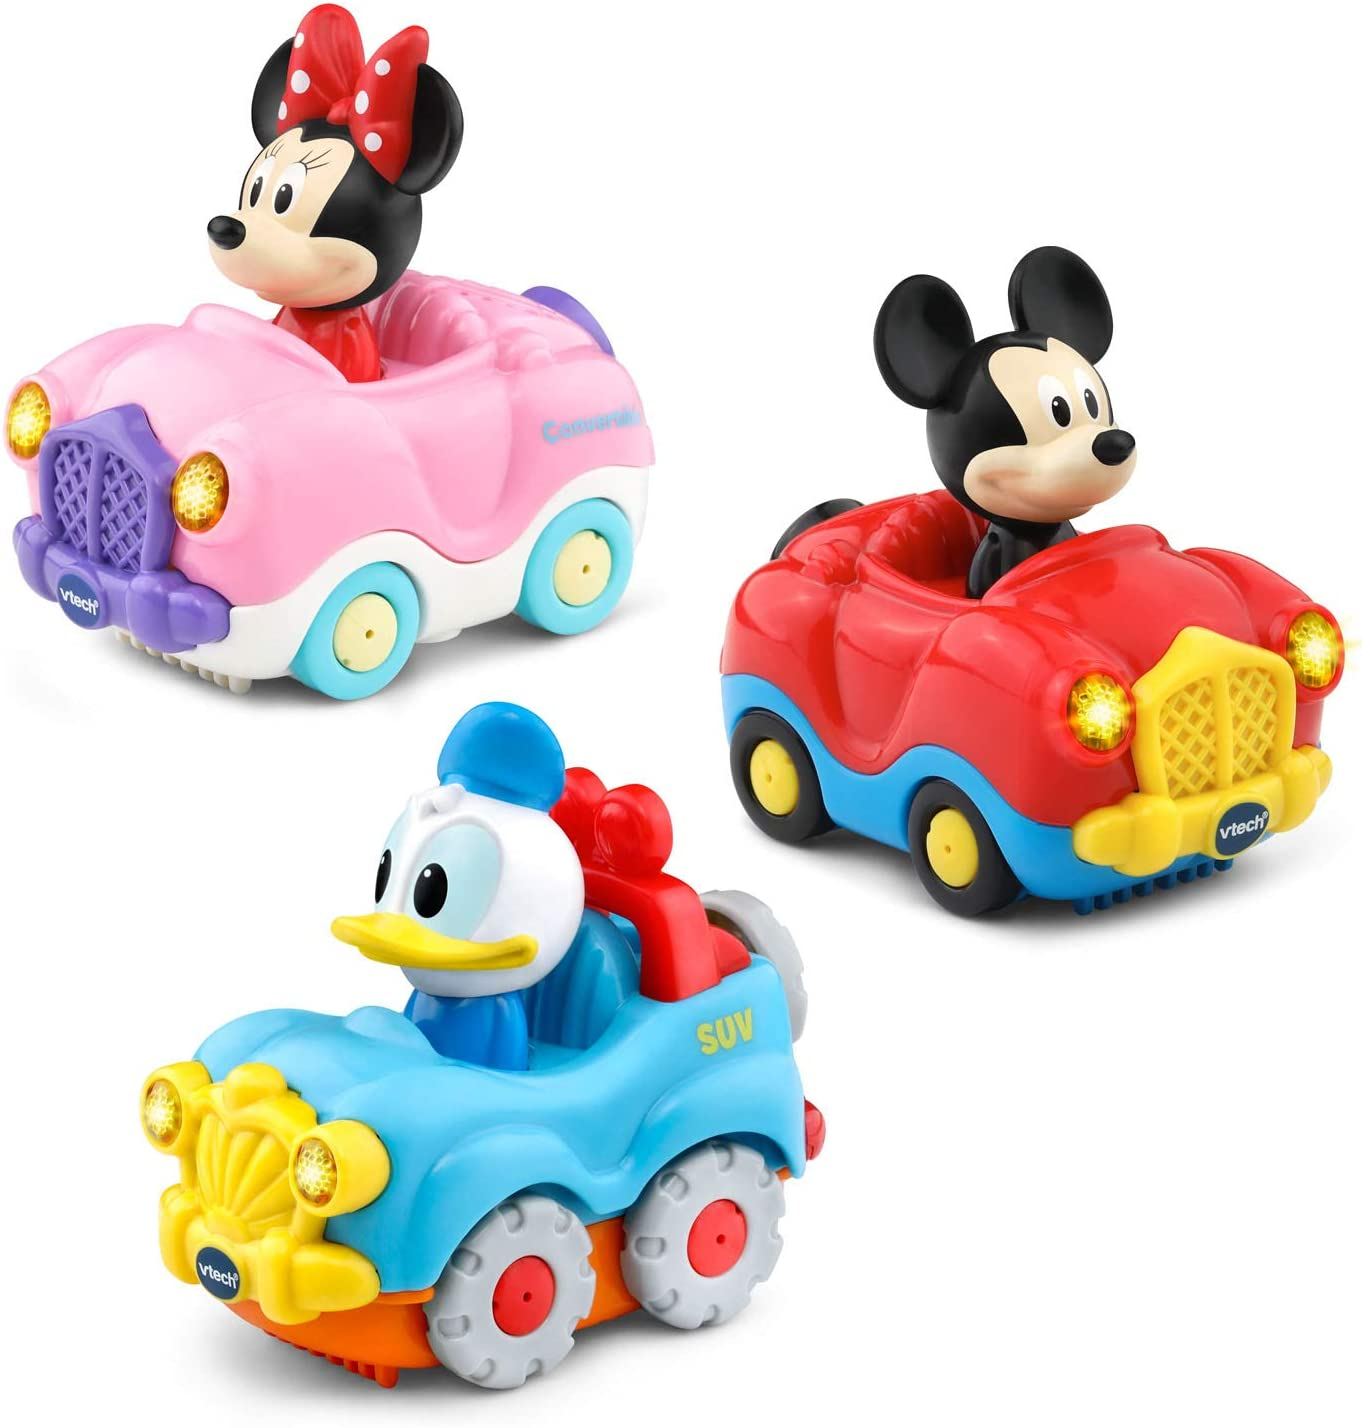 VTech Go! Go! Smart Wheels Disney Starter Pack with Mickey Mouse Convertible, Minnie Mouse Convertible and Donald Duck SUV, Multicolor